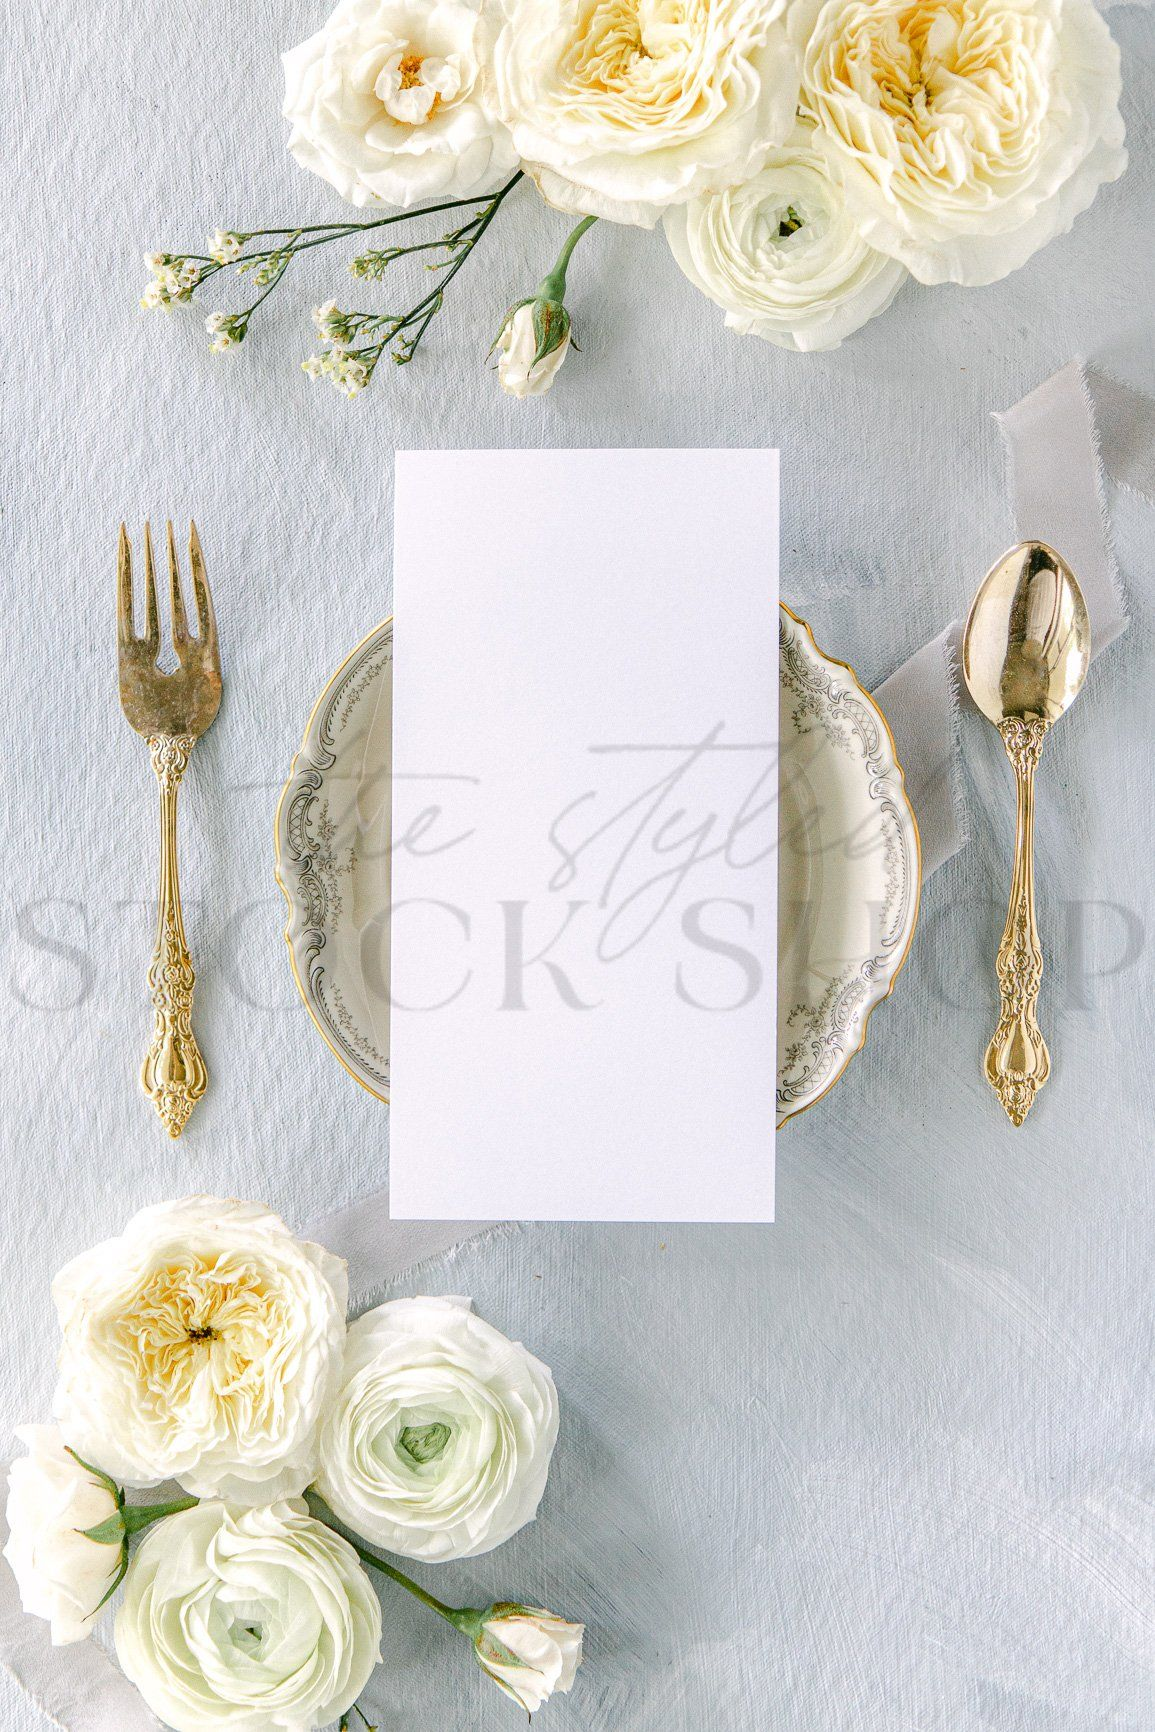 Quickly and beautifully mock up your wedding stationery designs with images from The Styled Stock Shop. Ideal for client proofs, Instagram, Pinterest, and Web. New! The Ethereal Collection was meticulously refreshed with a fine-art, film photography style. Images from the Ethereal Collection are ideal for attracting high-end clients and showcasing a variety of design styles. This collection was styled using luxury white garden roses and white ranunculus, vintage stamps, antique art-deco hand mir